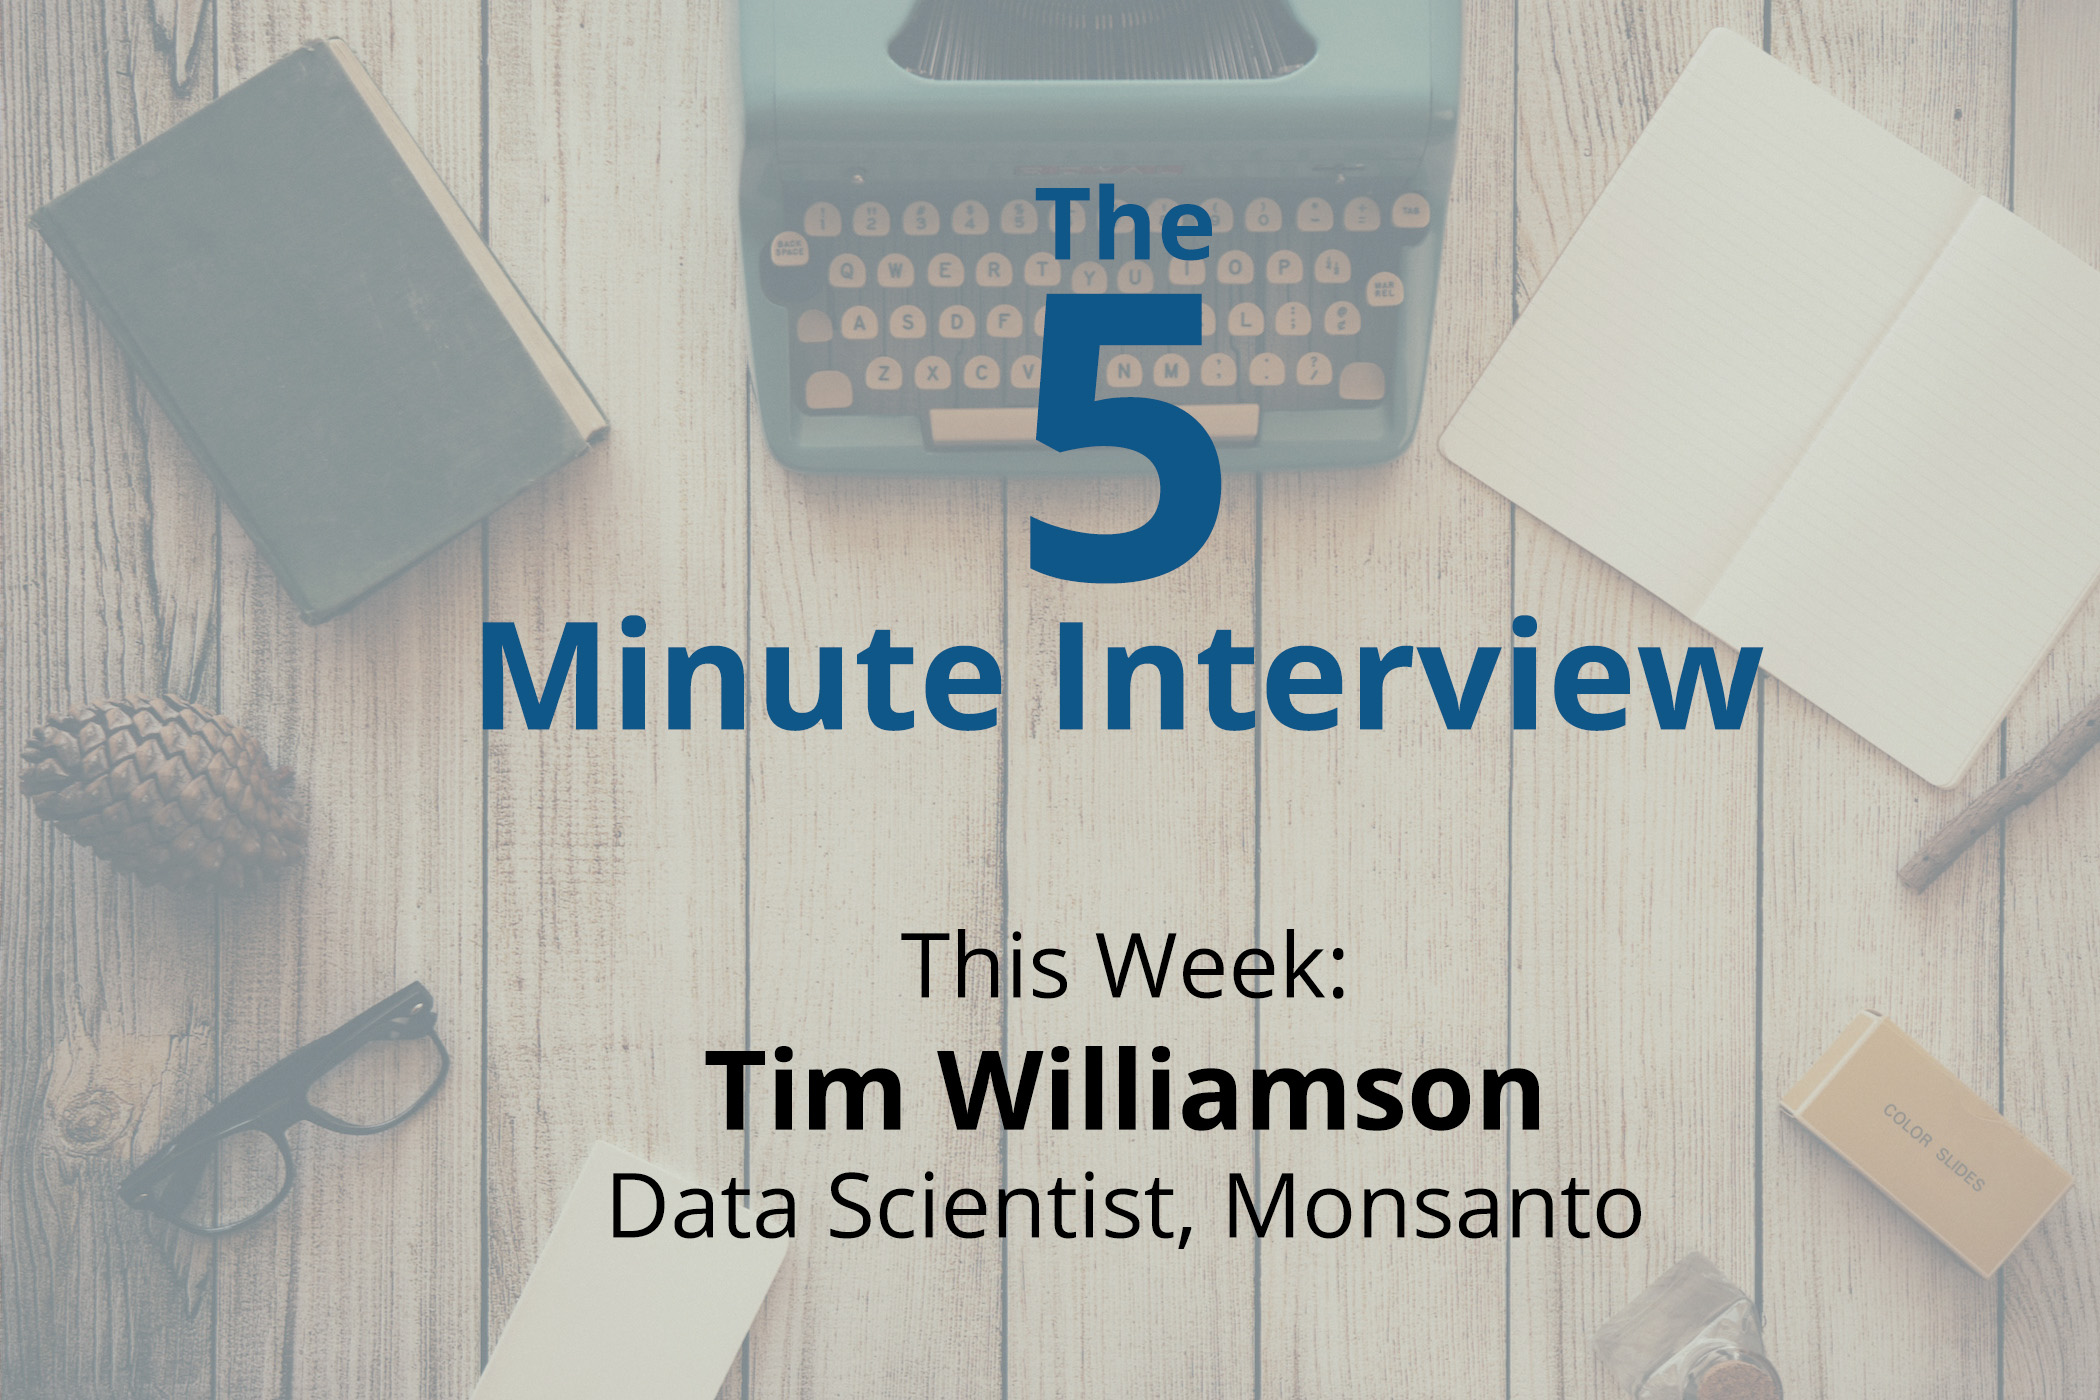 Catch this week's 5-Minute Interview with Tim Williamson, Data Scientist at Monsanto, on